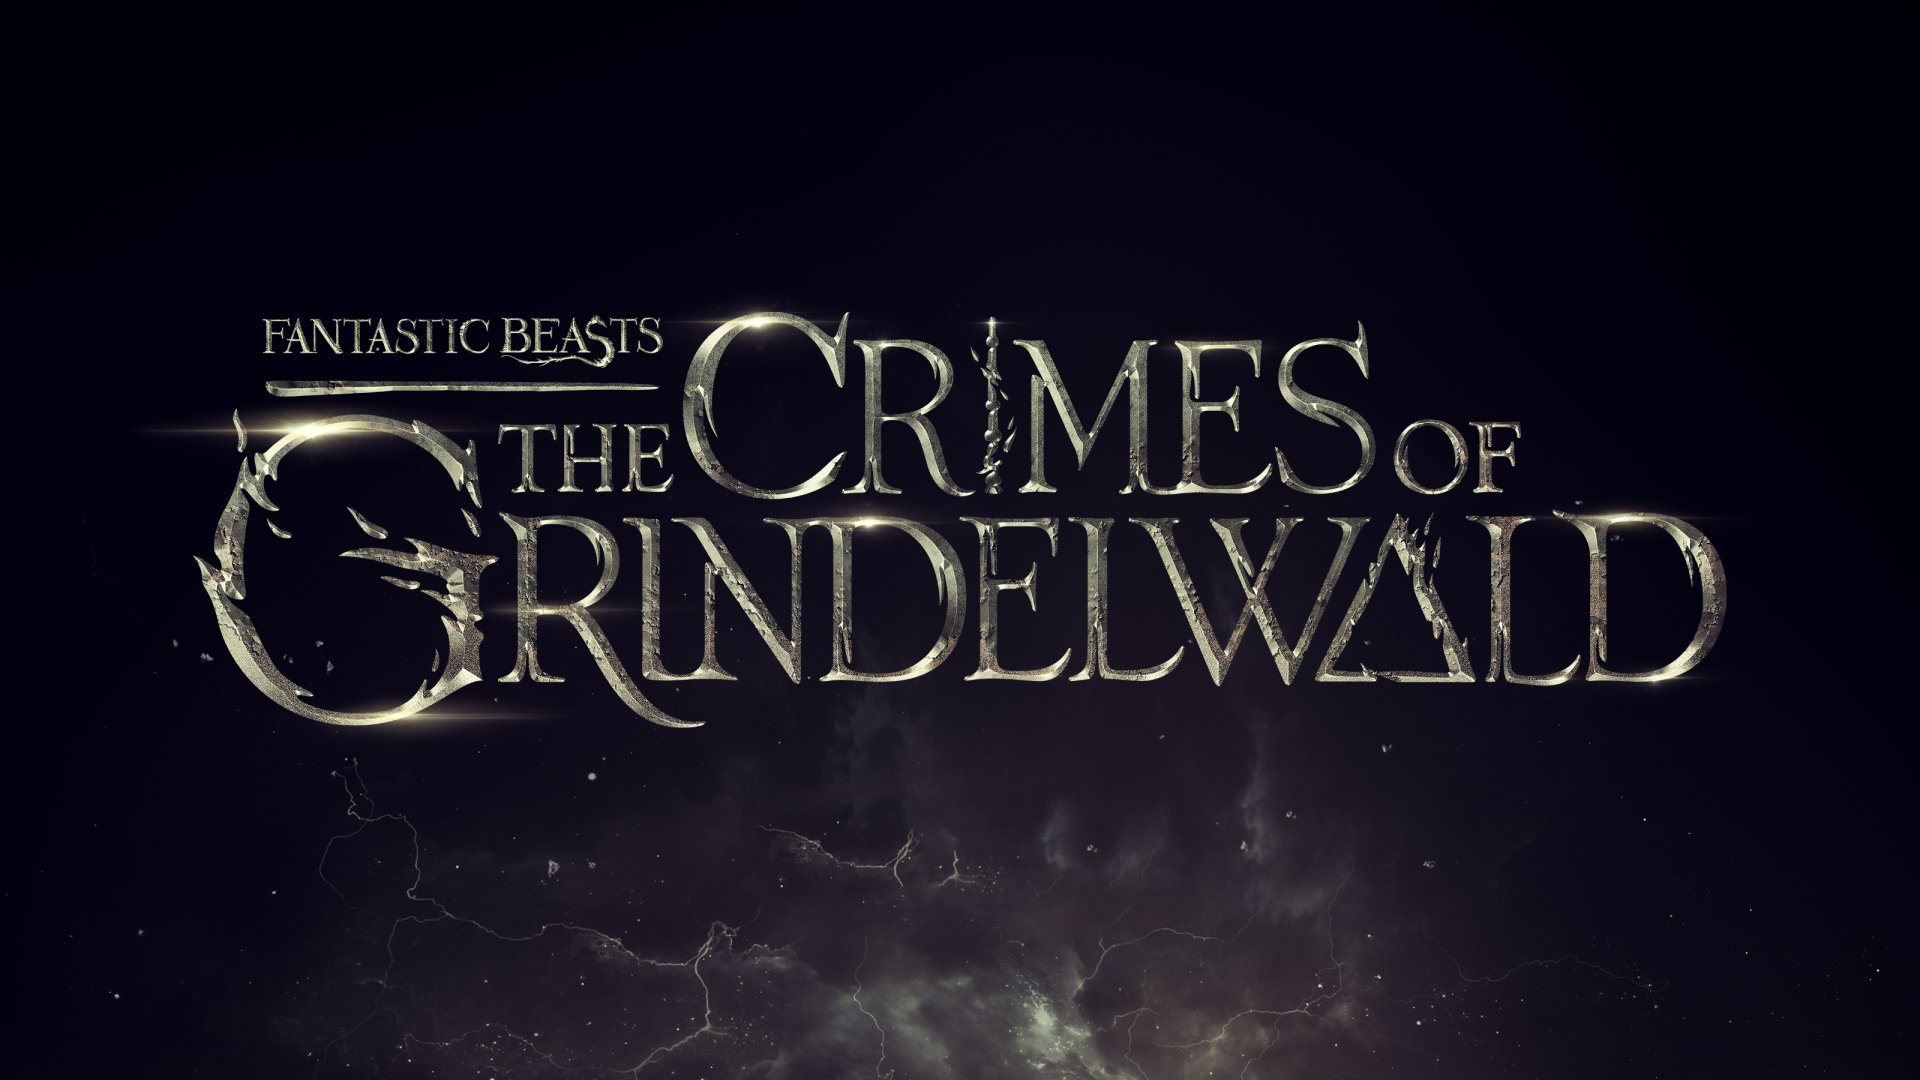 Movie - Fantastic Beasts: The Crimes of Grindelwald  Movie Wallpaper